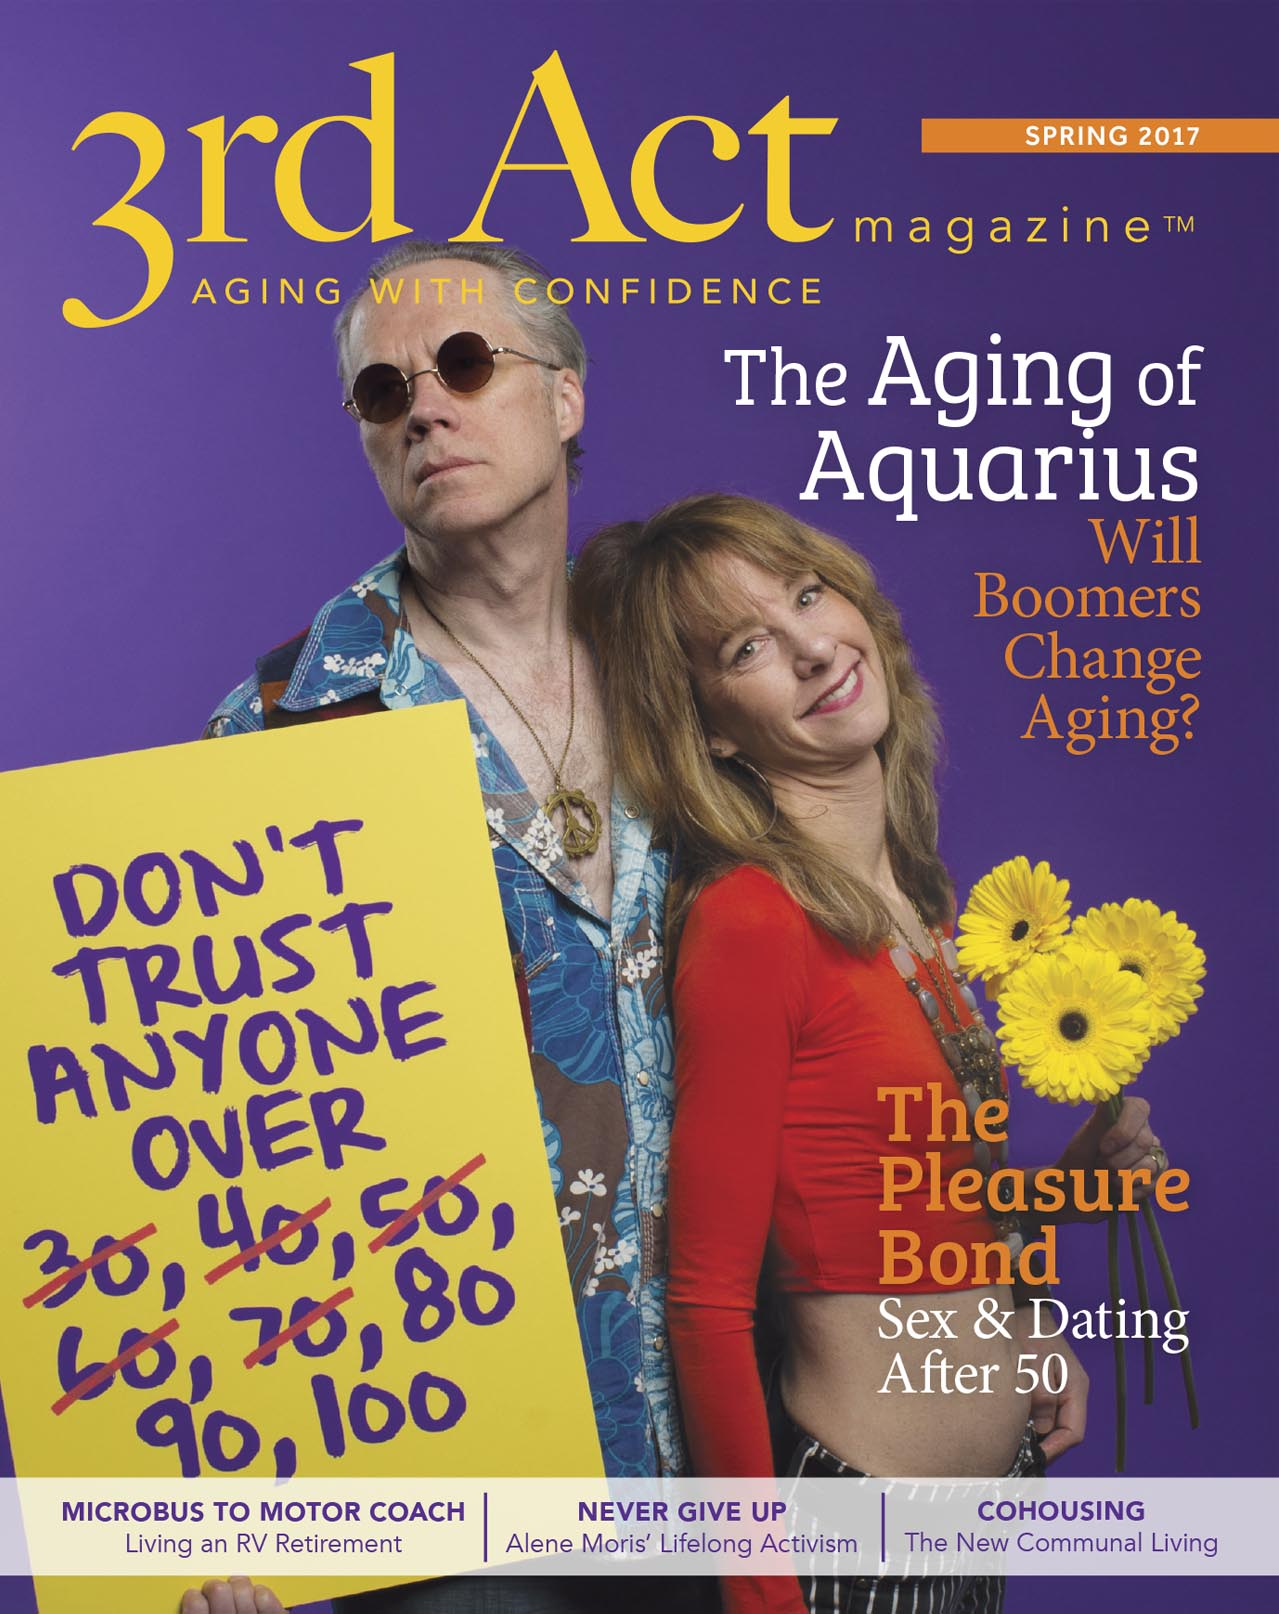 Joe and Nancy Guppy are younger members of the Boomer generation, but they have a deep understanding of what it means to age in the spotlight.